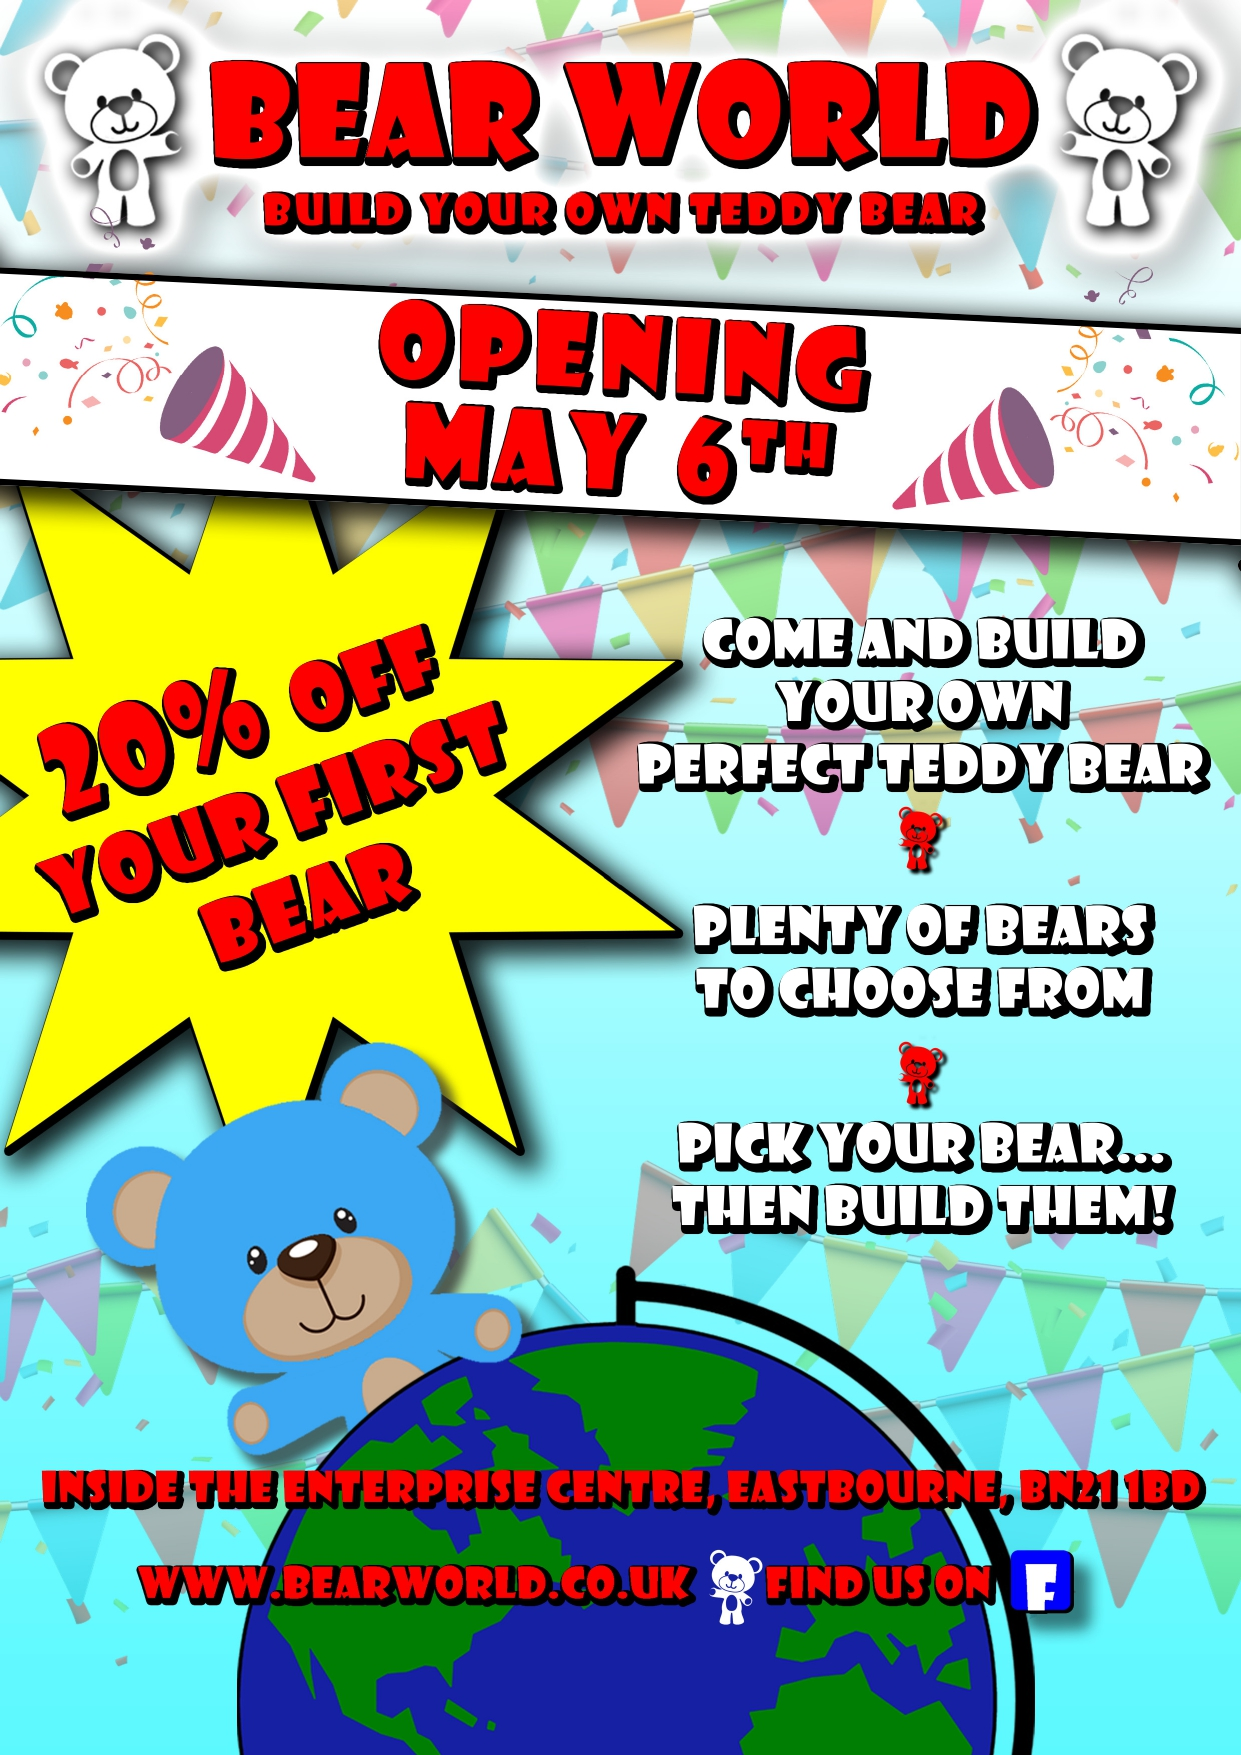 Bear World opens on the 6th May!